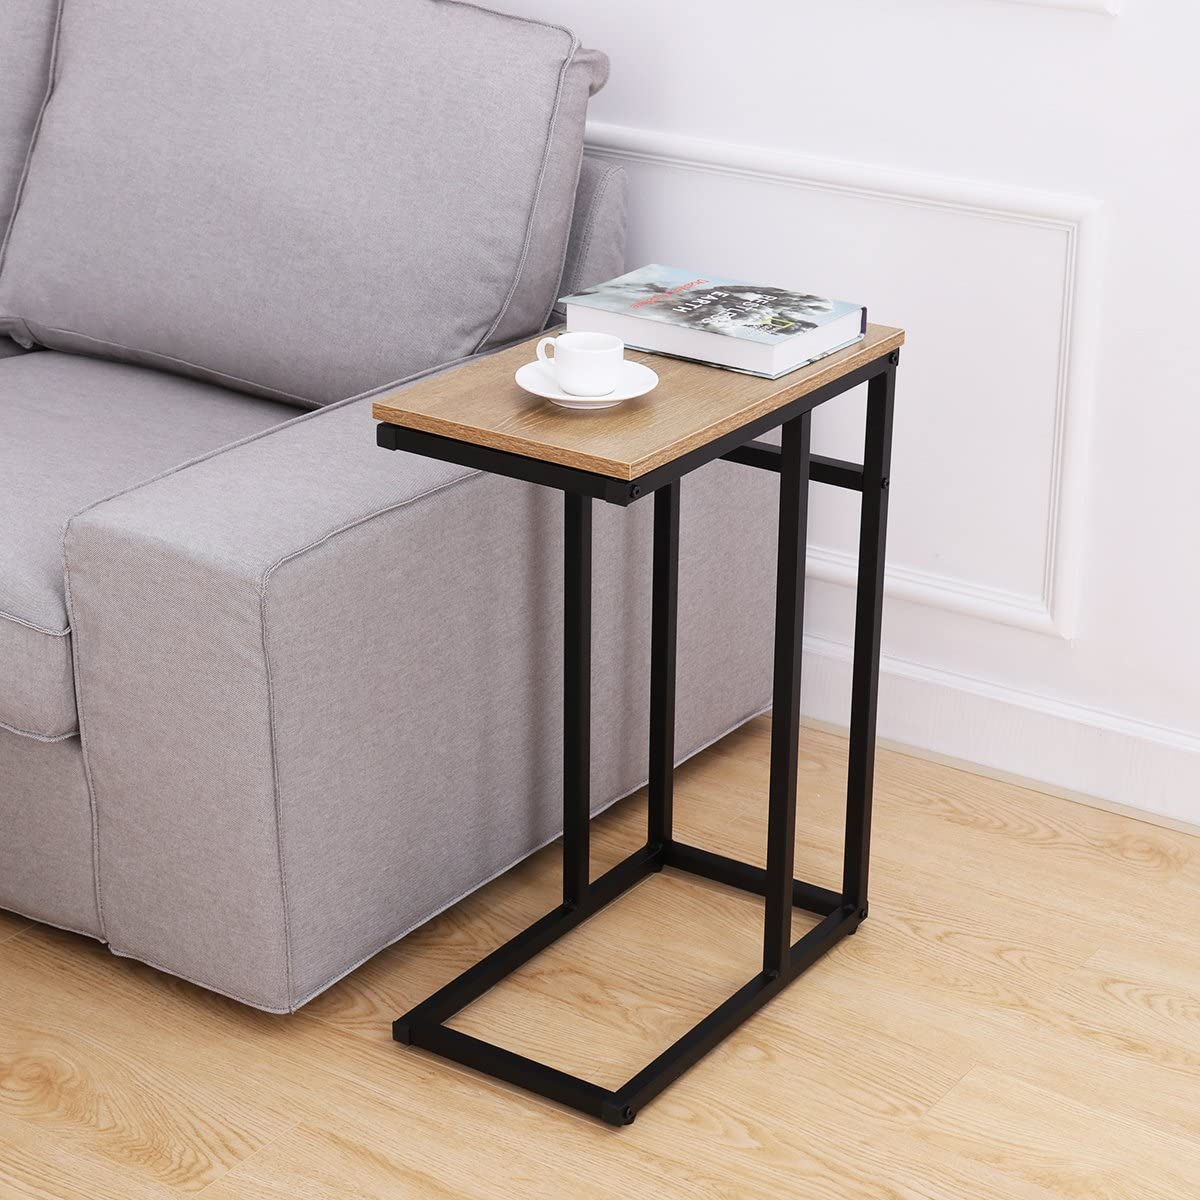 end tables home kitchen amazon co uk rh amazon co uk Slide Under Sofa Side Table sofa side tables uk only